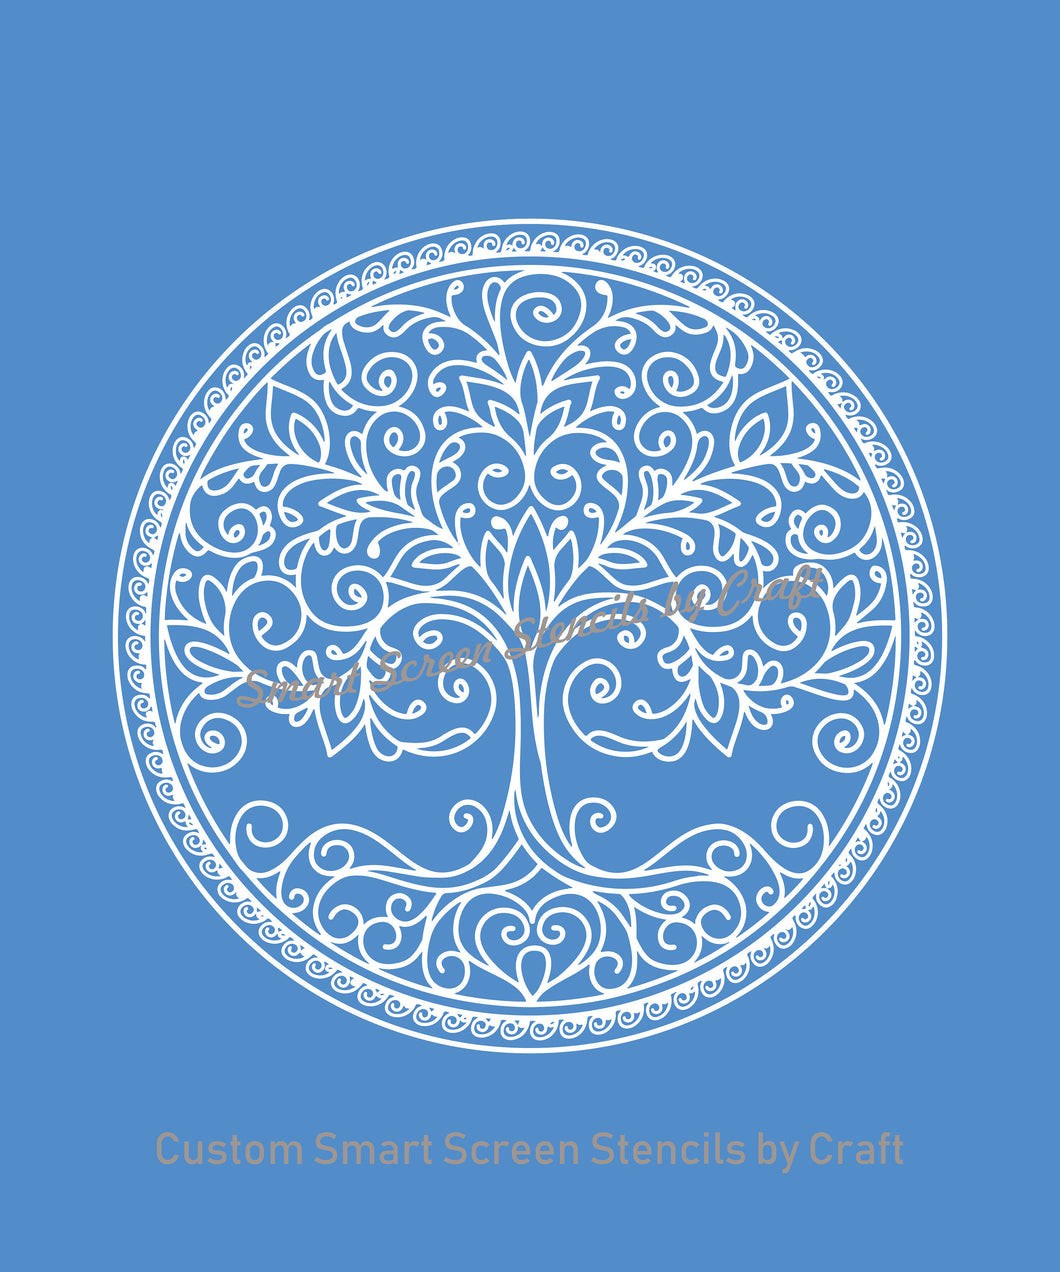 Mother Nature Tree with Border - Custom Reusable SilkScreen Stencil - Canvas, Cards, Glass, Ceramic, Tile, Walls, Fabric, Wood, Clay, etc.